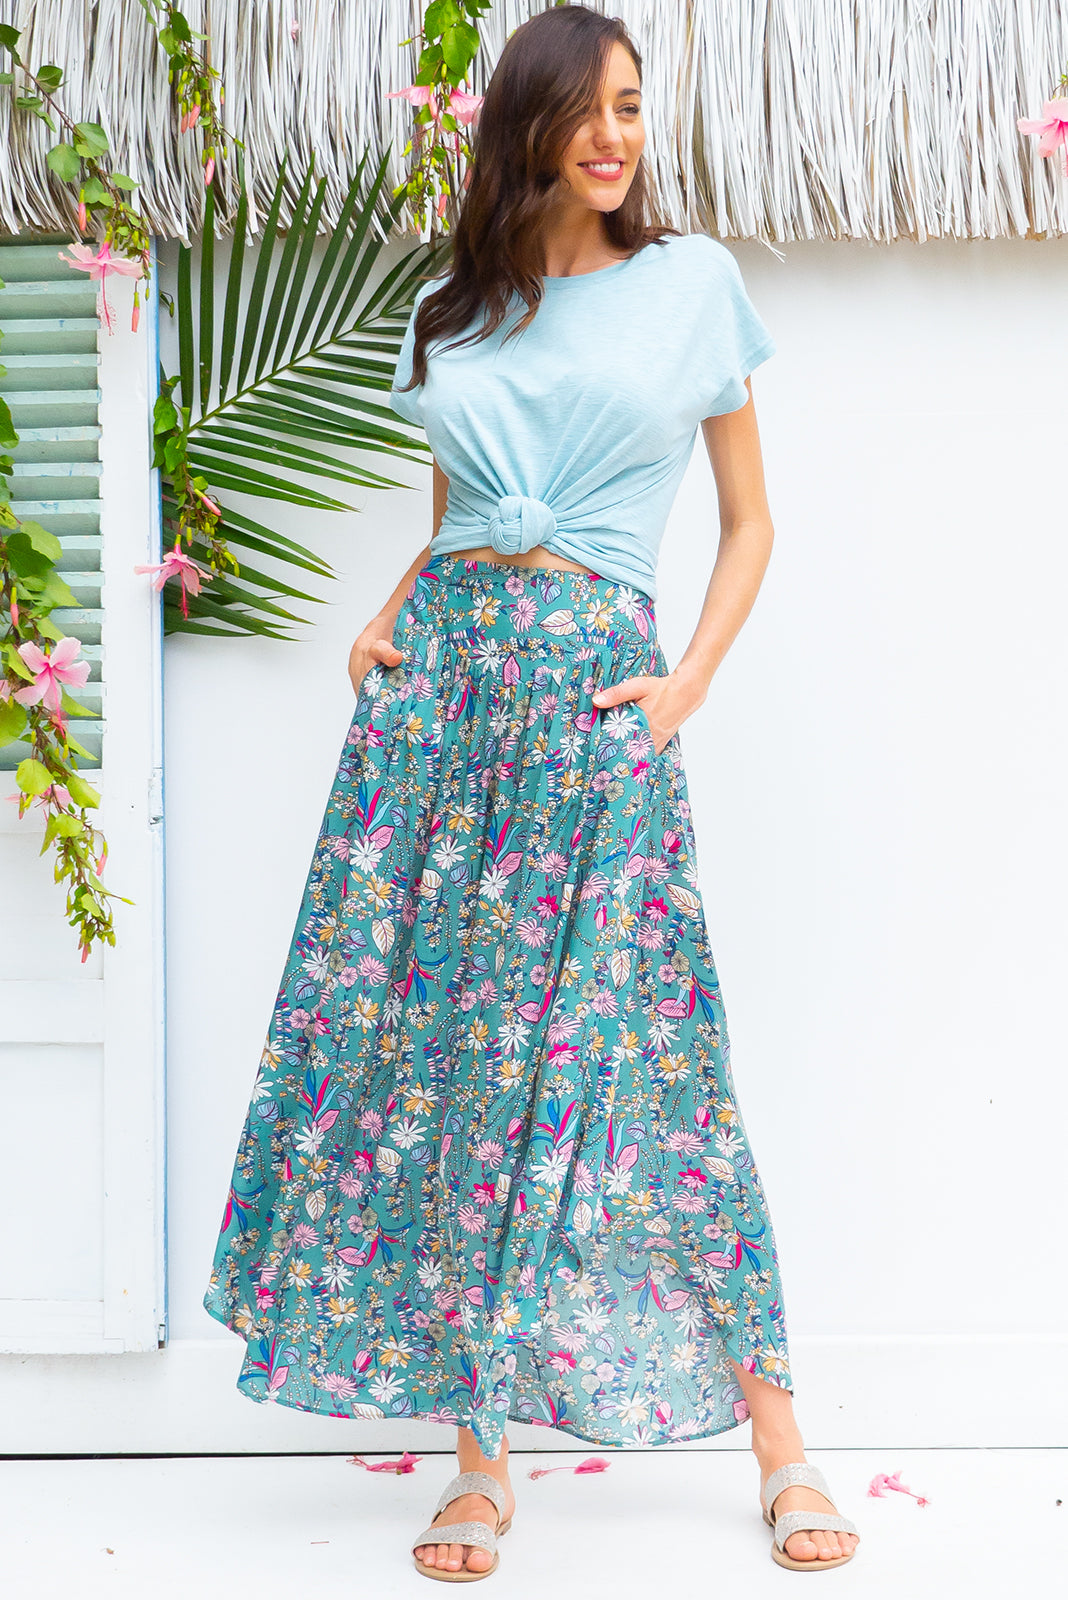 Sails Palma Green Maxi Skirt with a soft ruched elastic back and pockets in a gorgeous fern green intricate floral print on rayon fabric